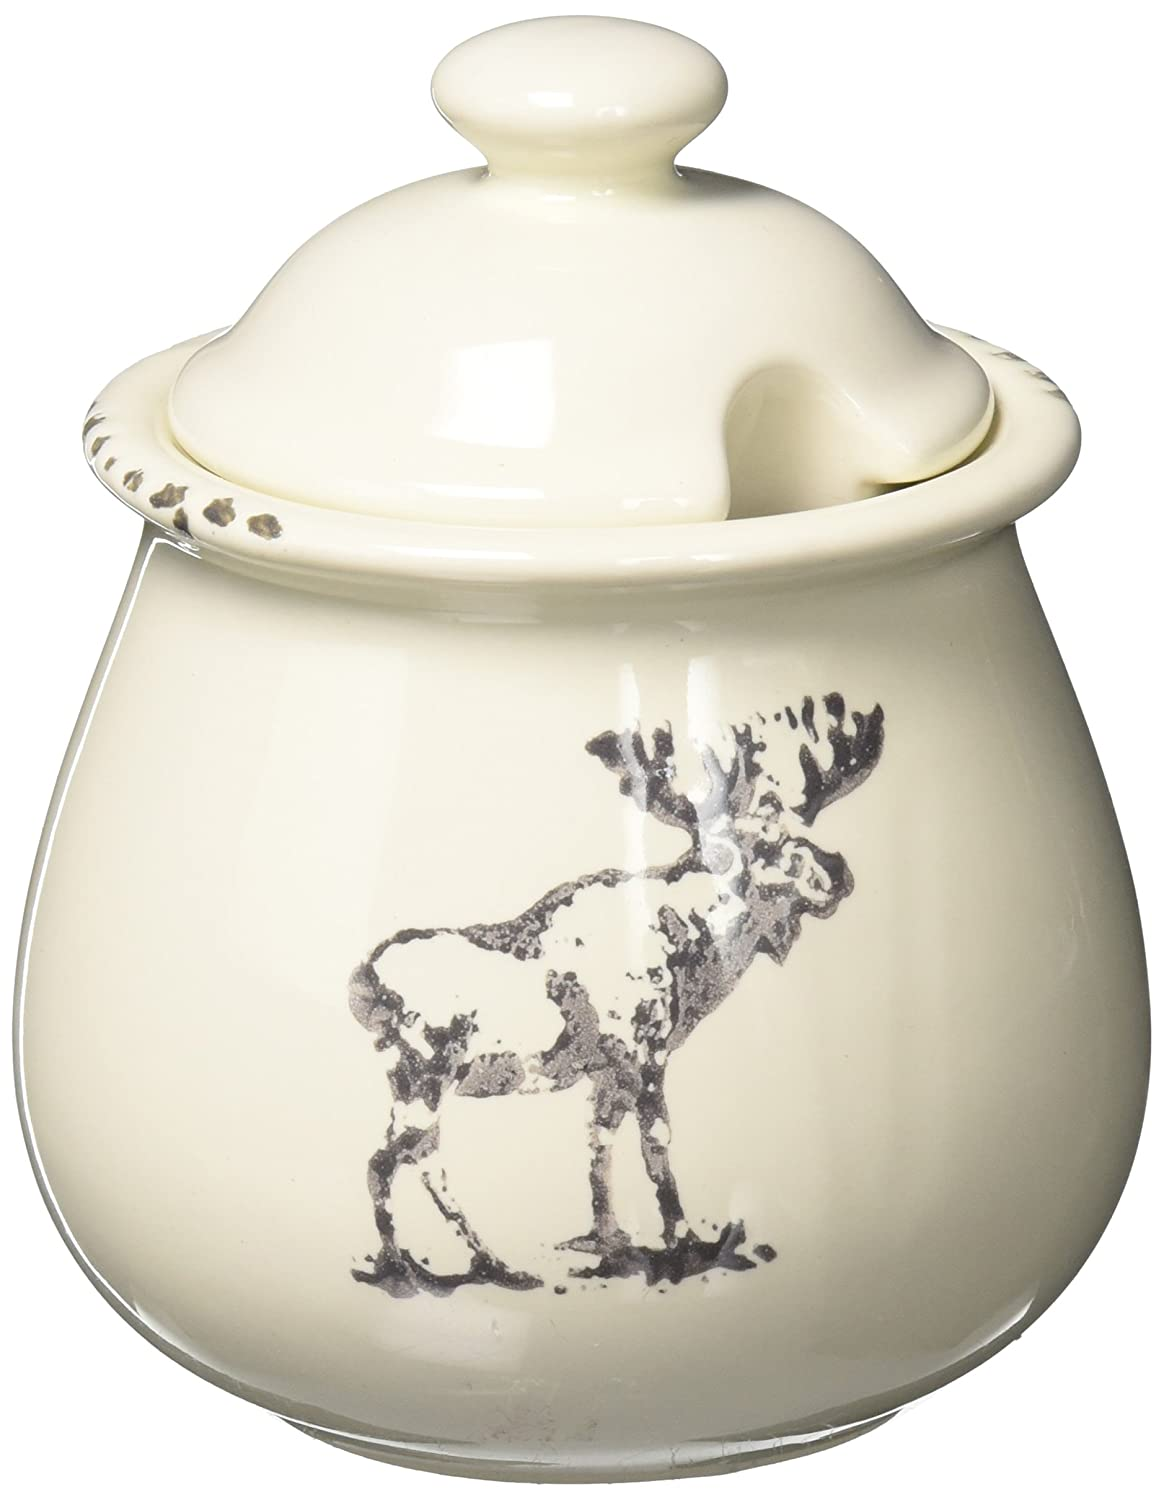 Abbott Collection Algonquin Stoneware Moose Covered Jar 27-ALGONQUIN/JAR